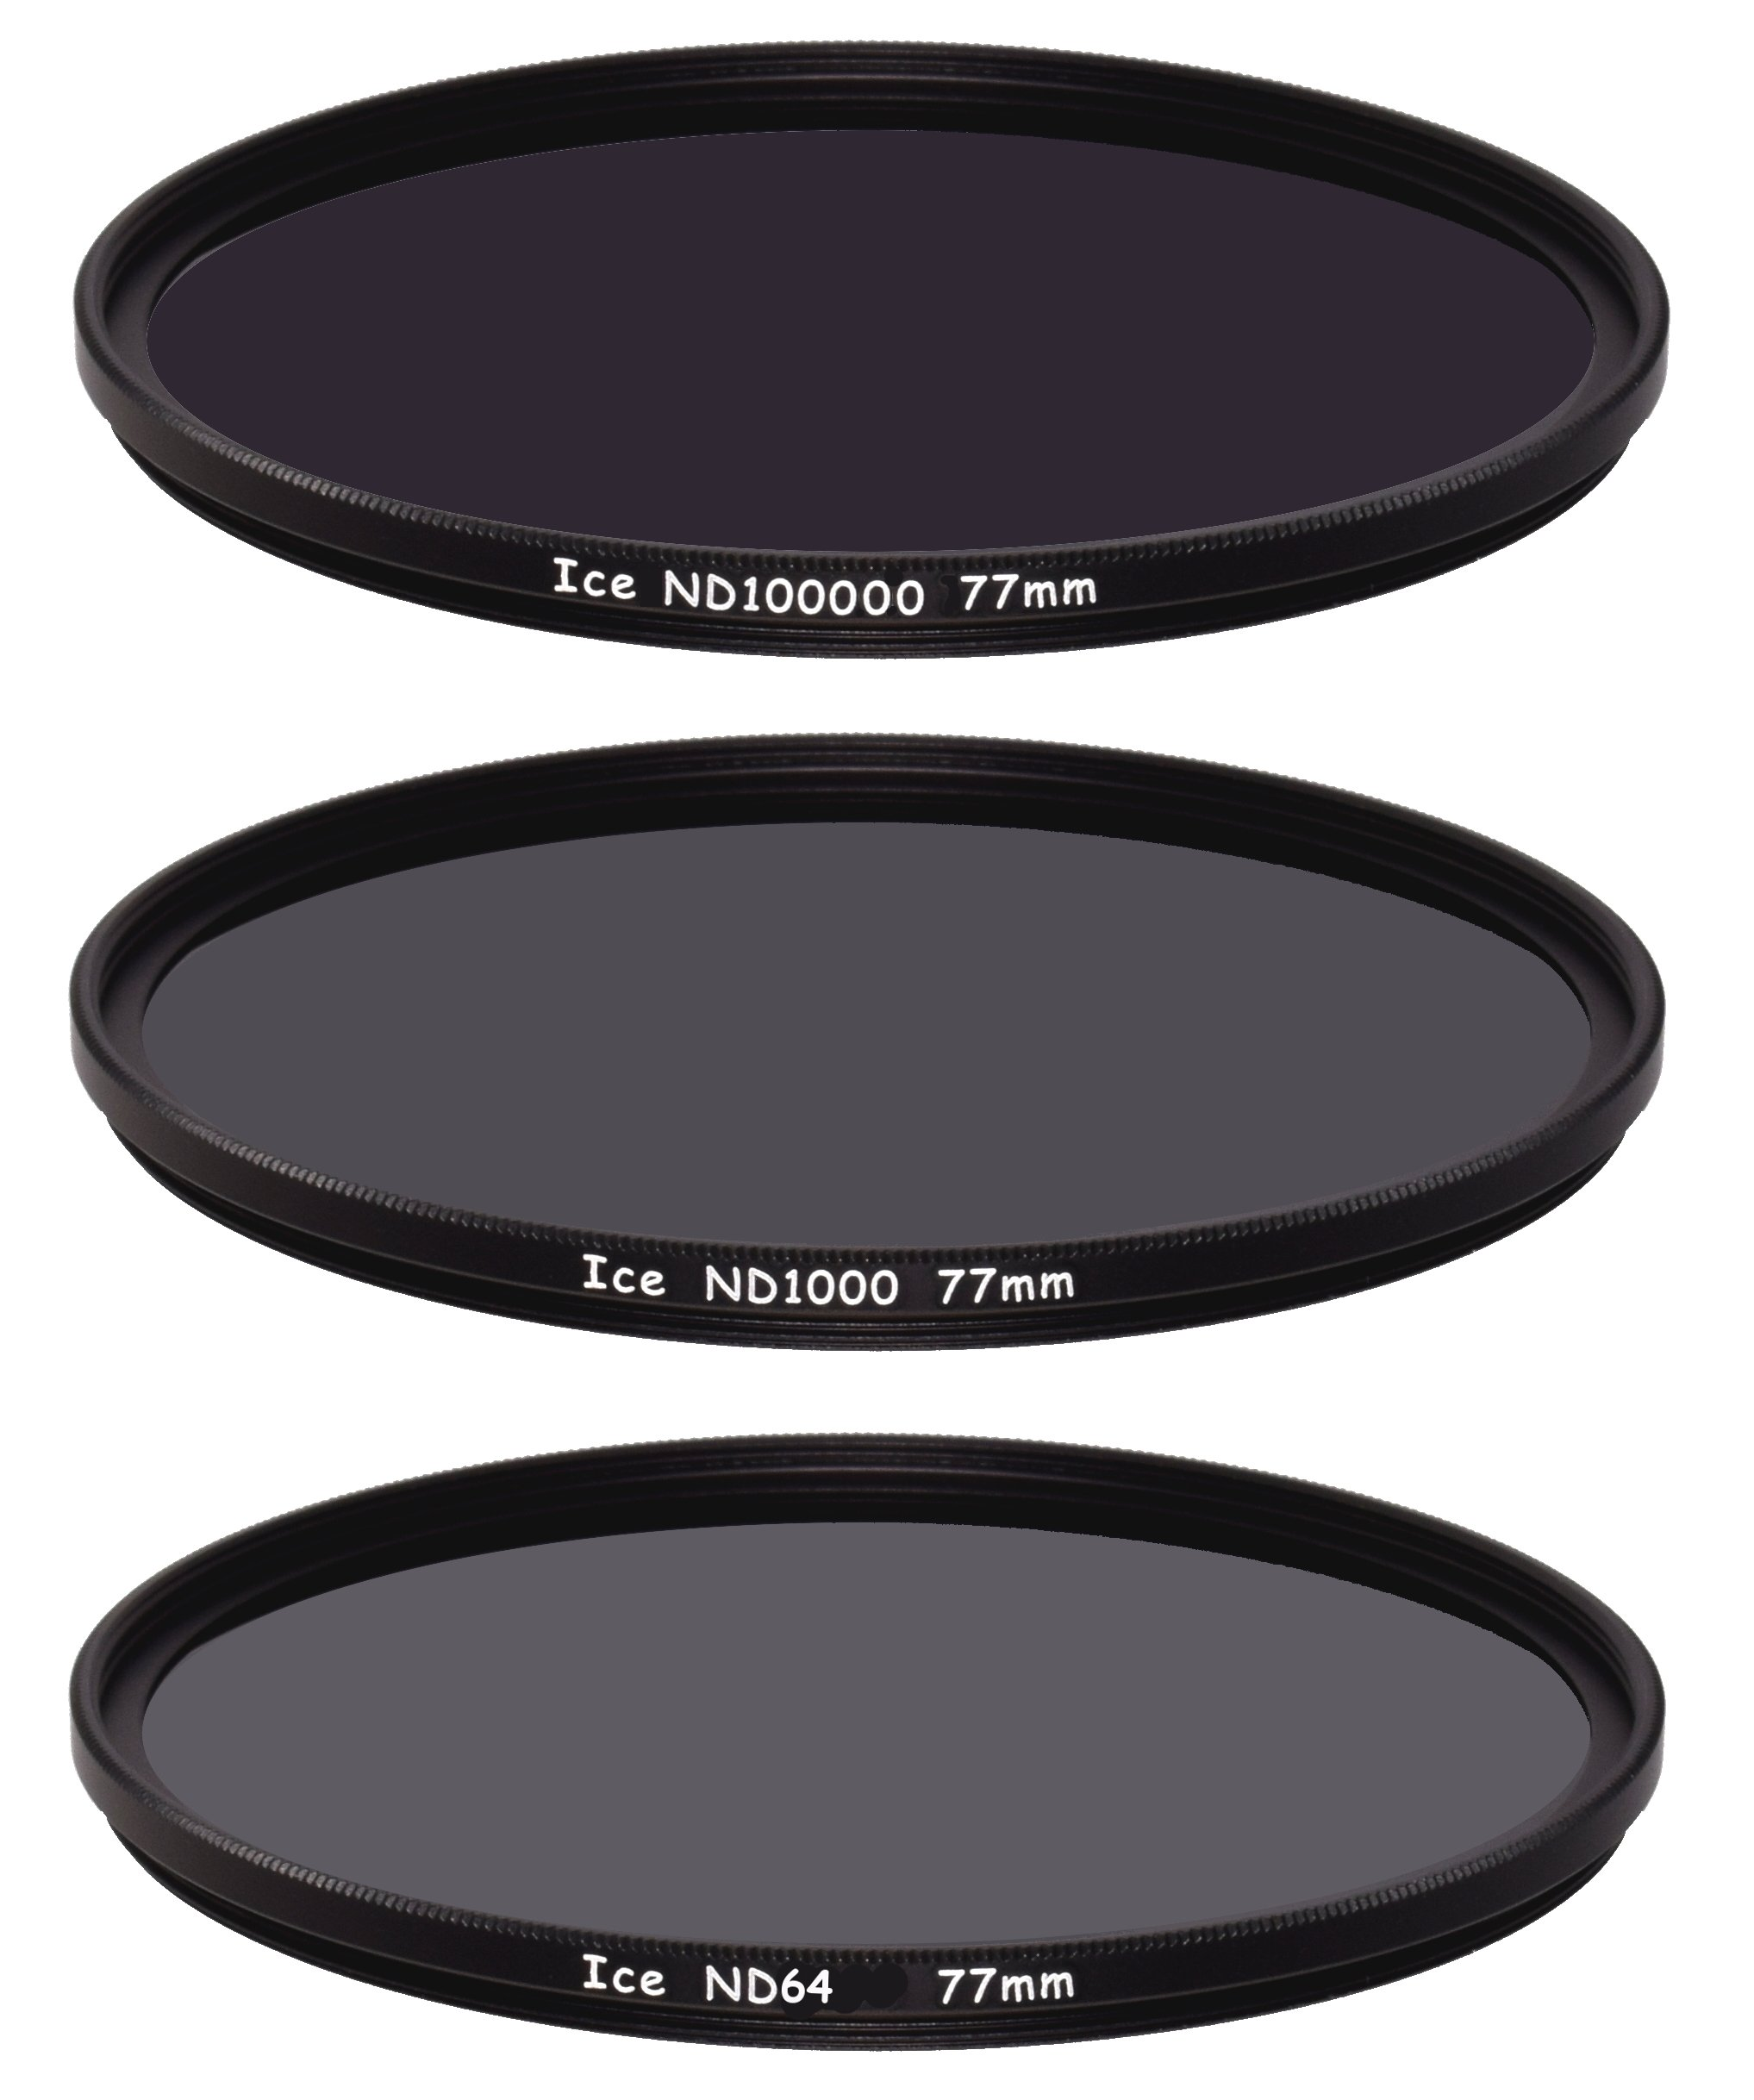 ICE 77mm Extreme ND 3 Filter Set ND100000 ND1000 & ND64 Neutral Density 6, 10, 16.5 Stop Optical Glass by Ice